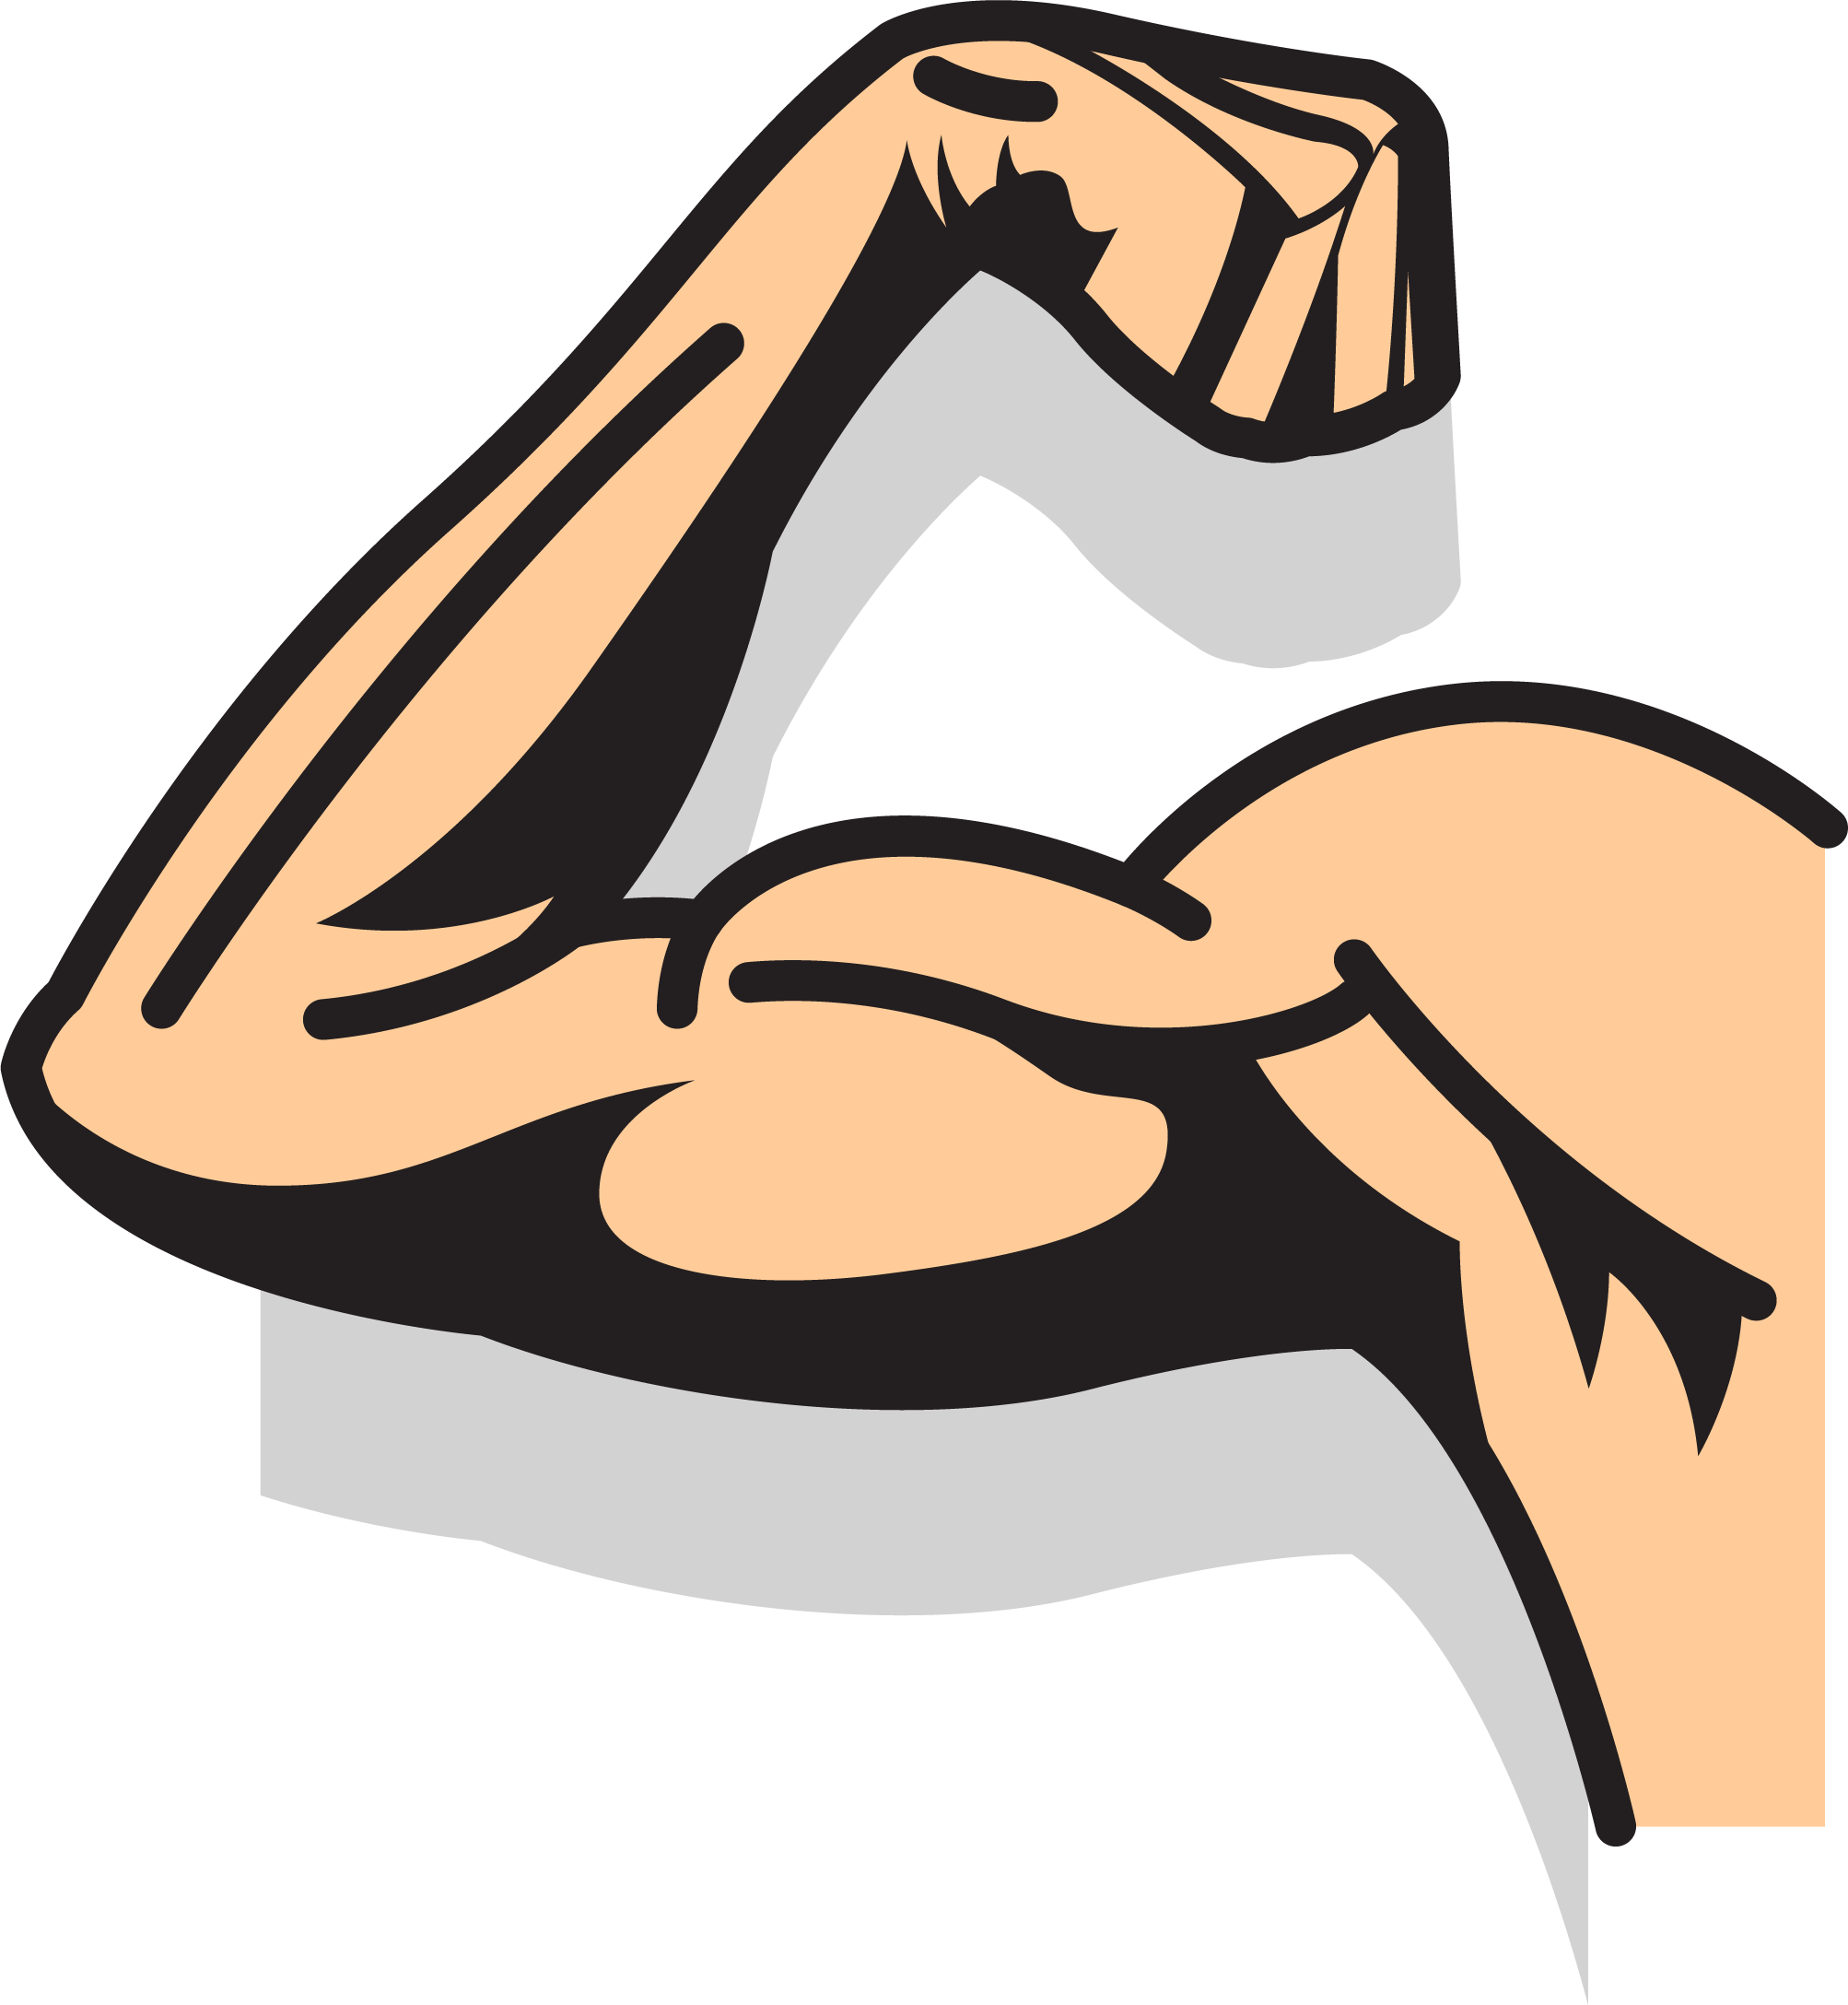 Proud clipart step. Strong arm drawing at